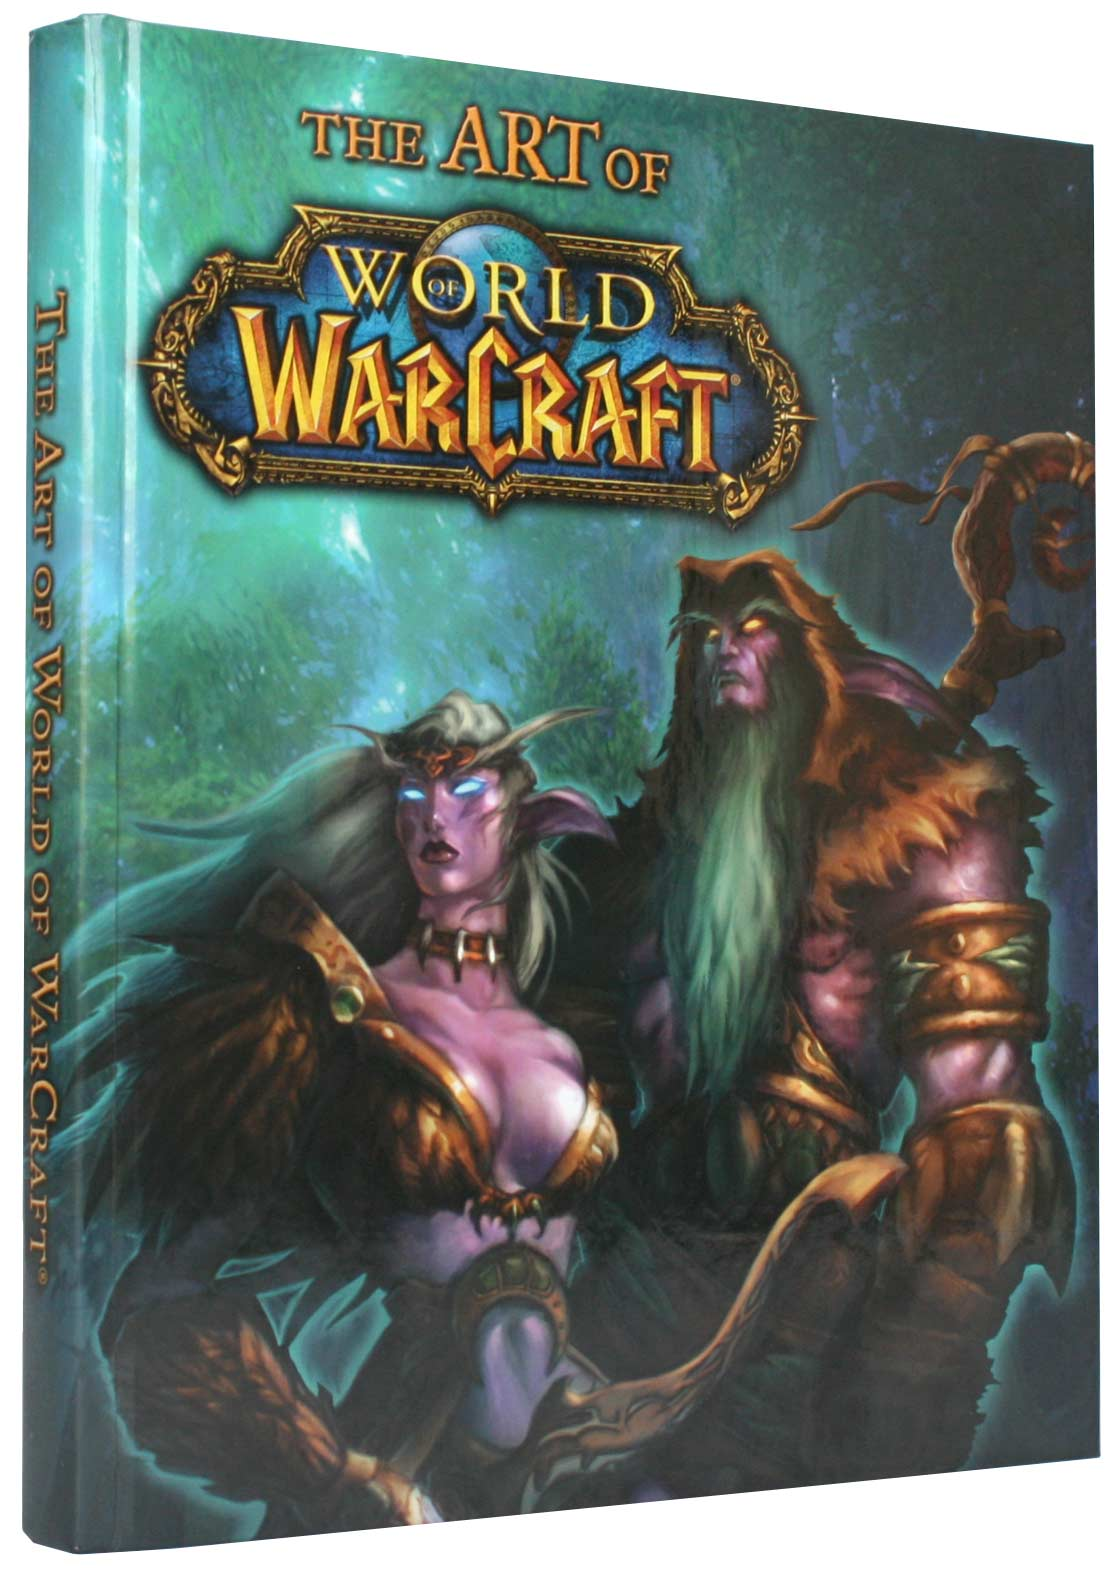 The Art of World of Warcraft (couverture de l&#039;Art Book)